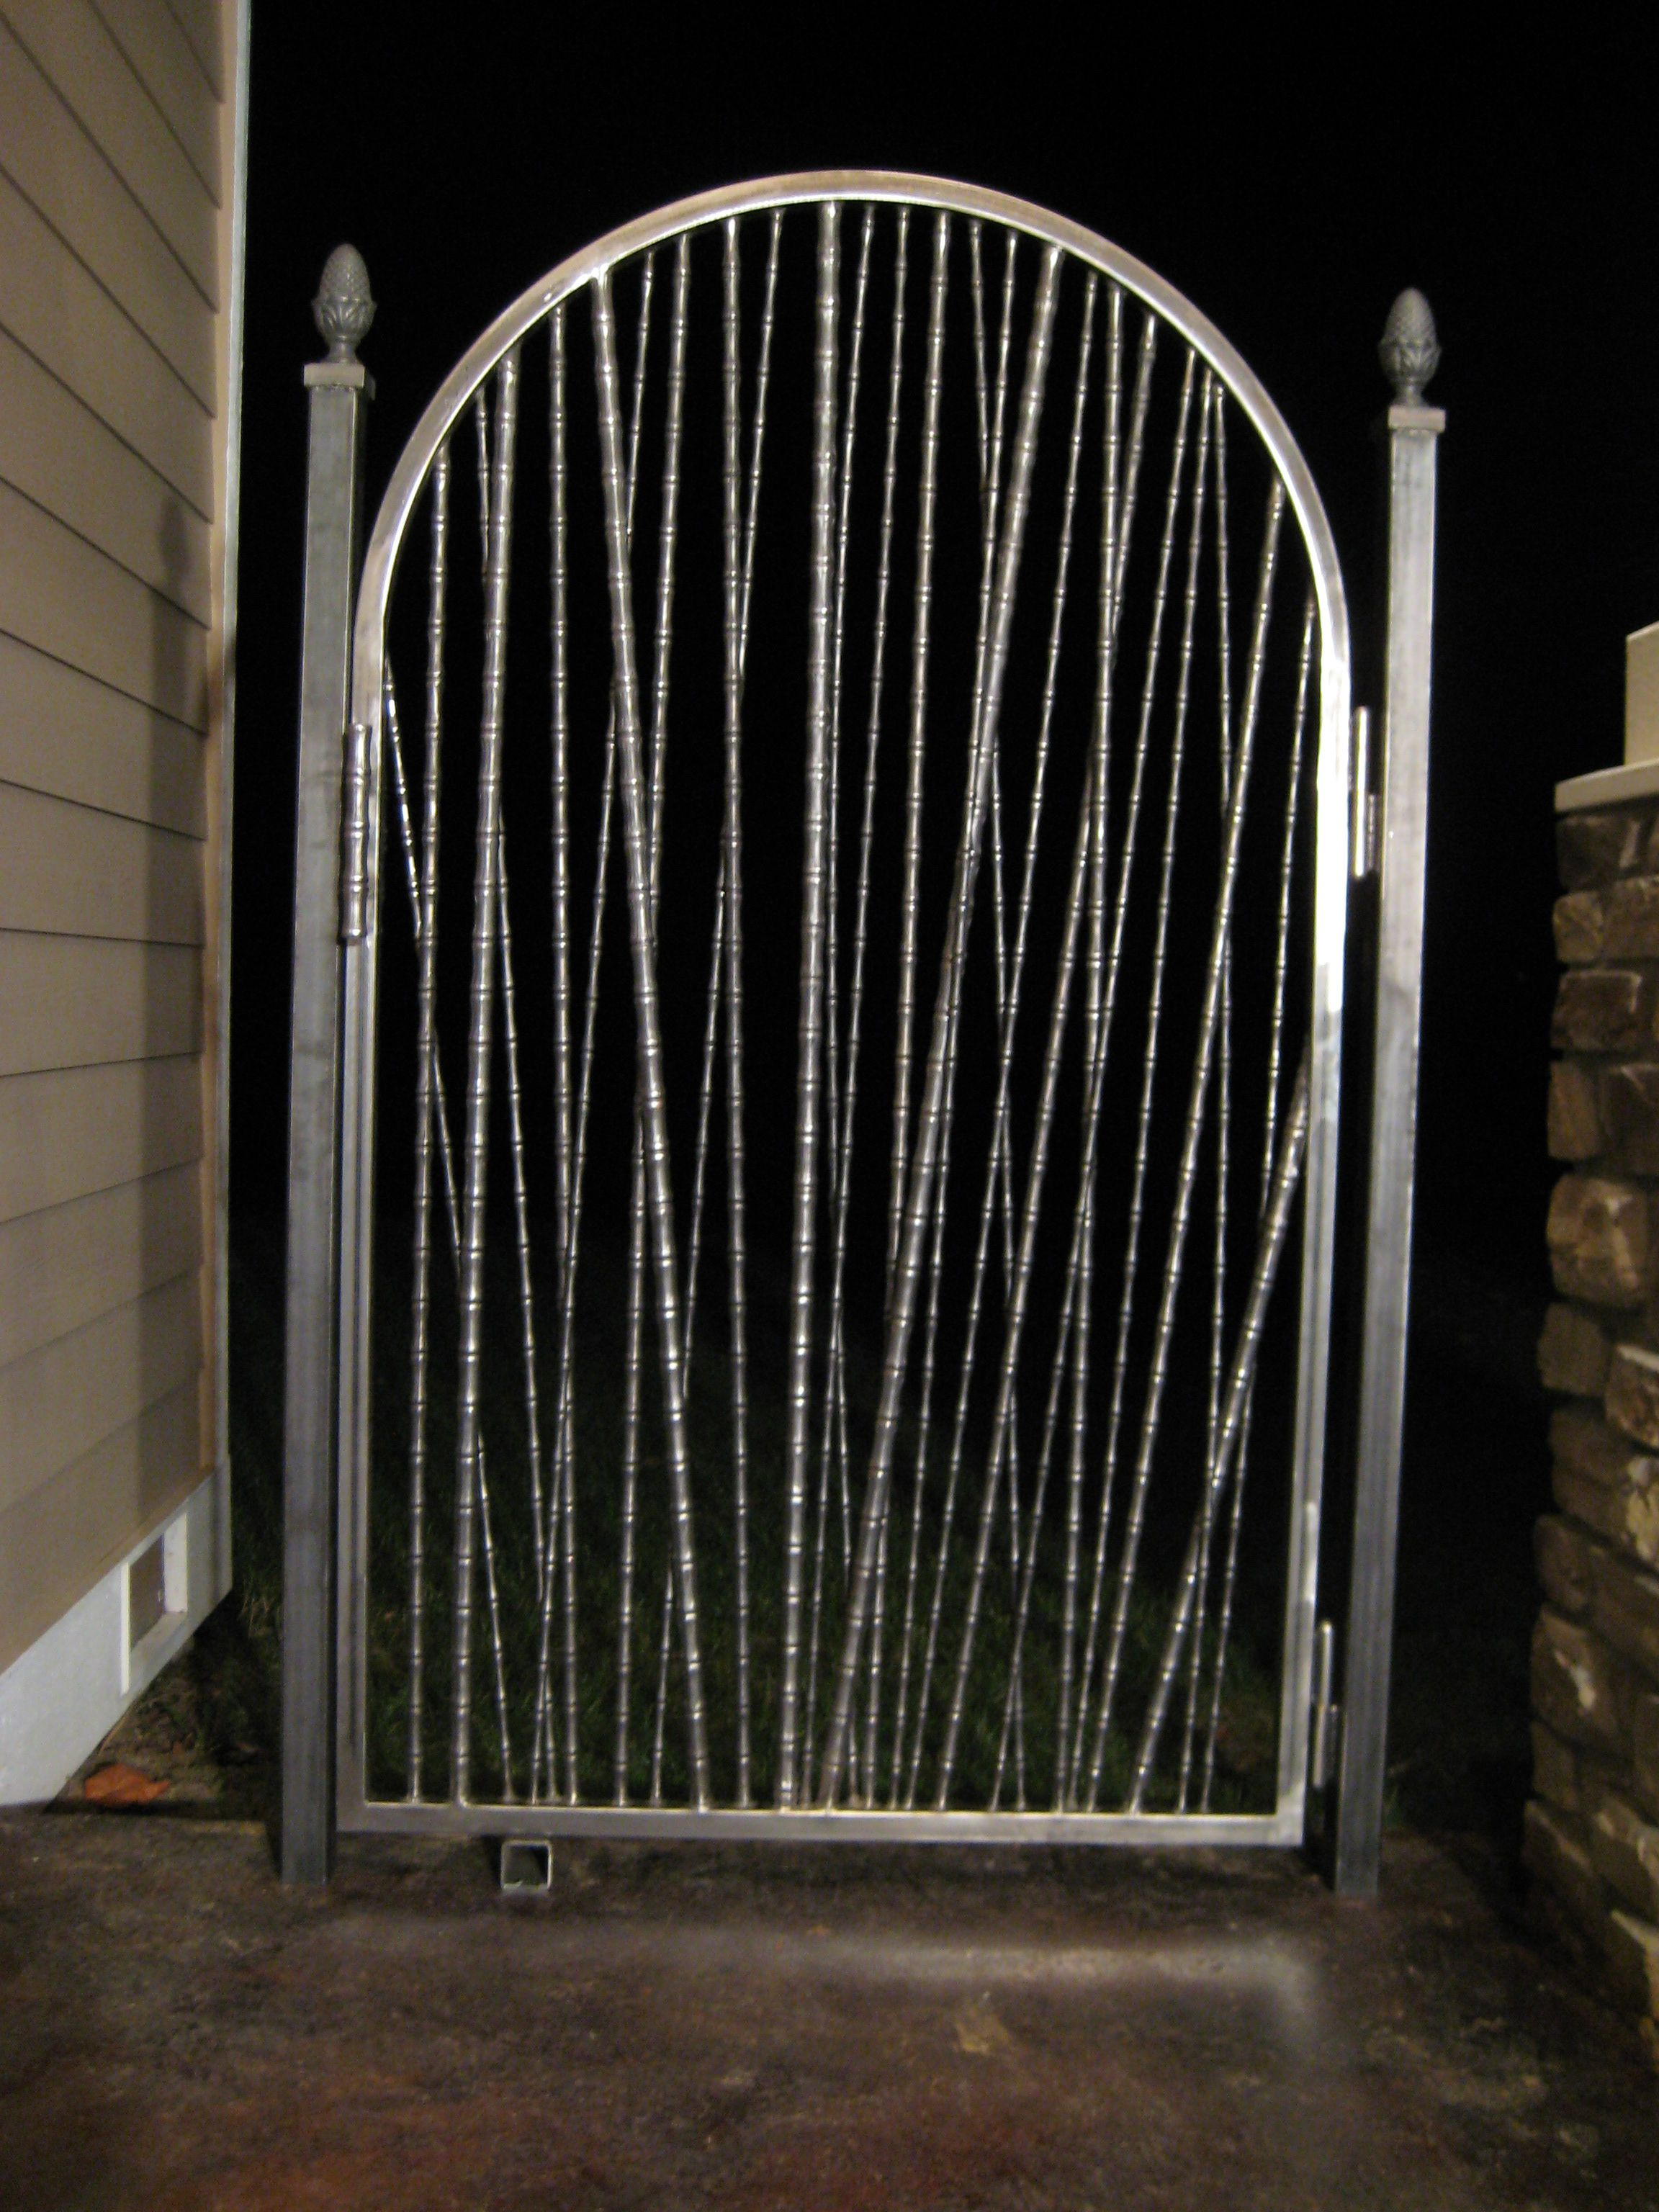 Entrance Gates Designs Show Pictures Lovely Bamboo Gate A Really Popular Design This Wrought Iron Gate